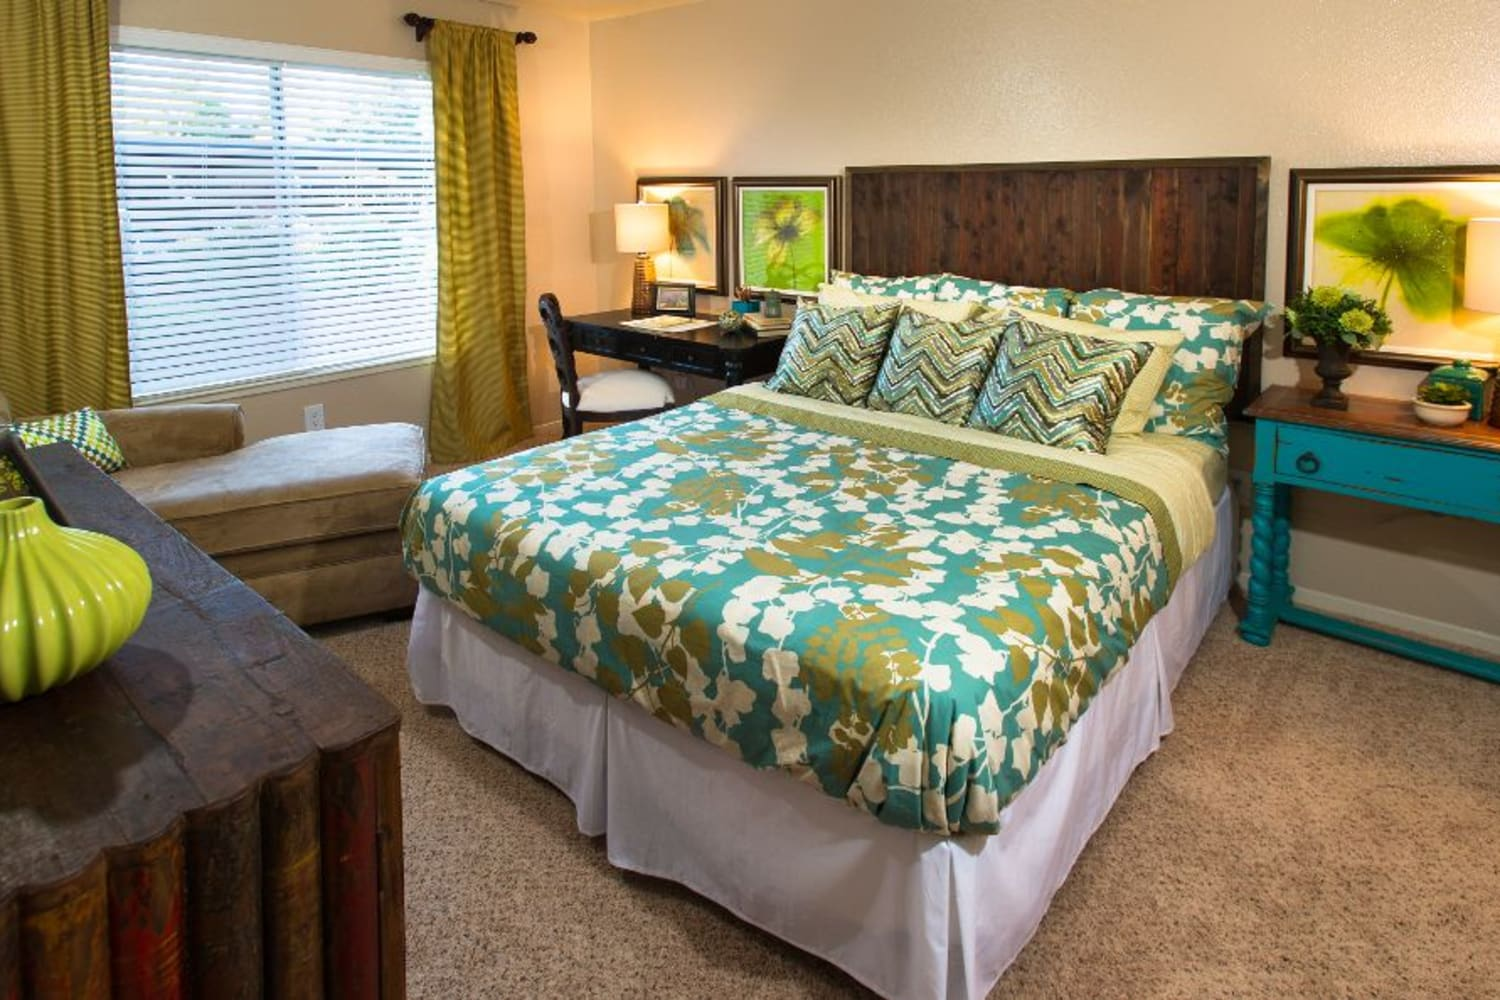 Enjoy your spacious new bedroom at Bridges at San Ramon in San Ramon, California